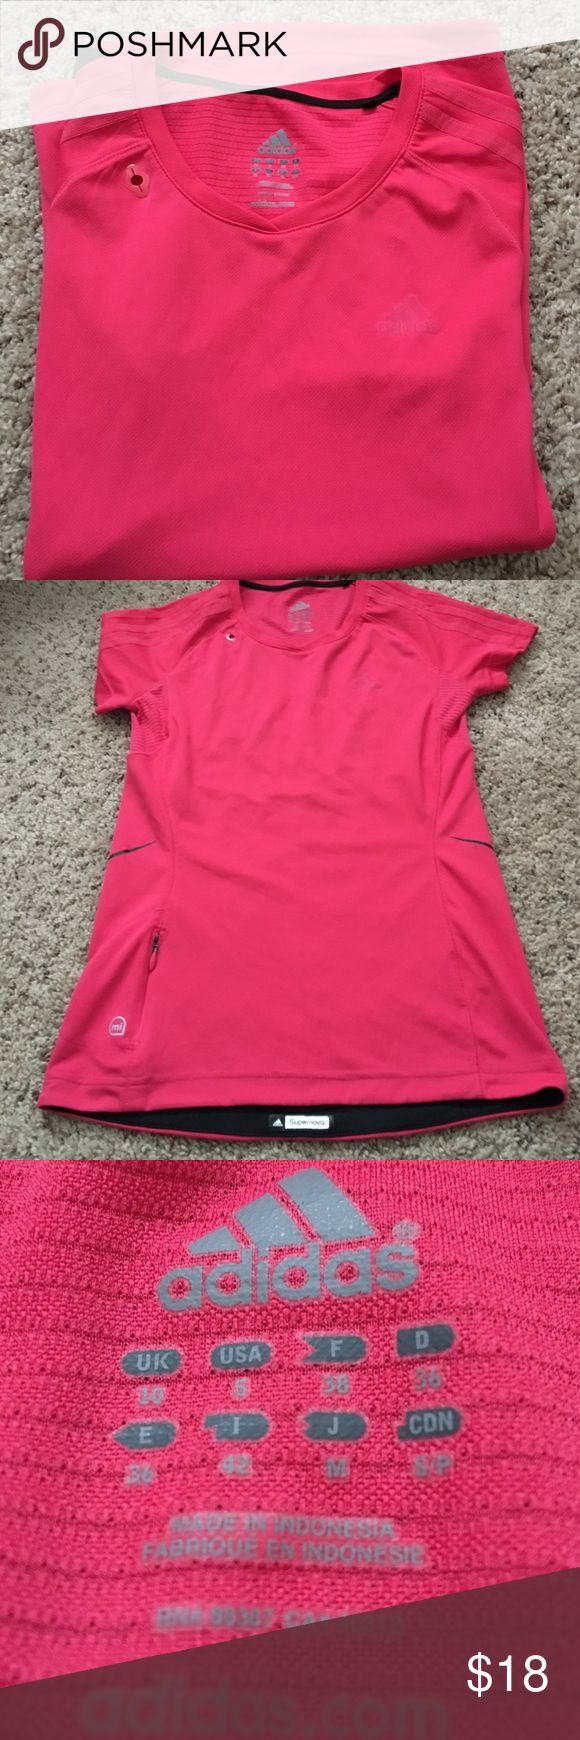 Adidas supernova tee Almost new.great condition. No wear/ tear. Color coral Adidas Tops Tees - Short Sleeve